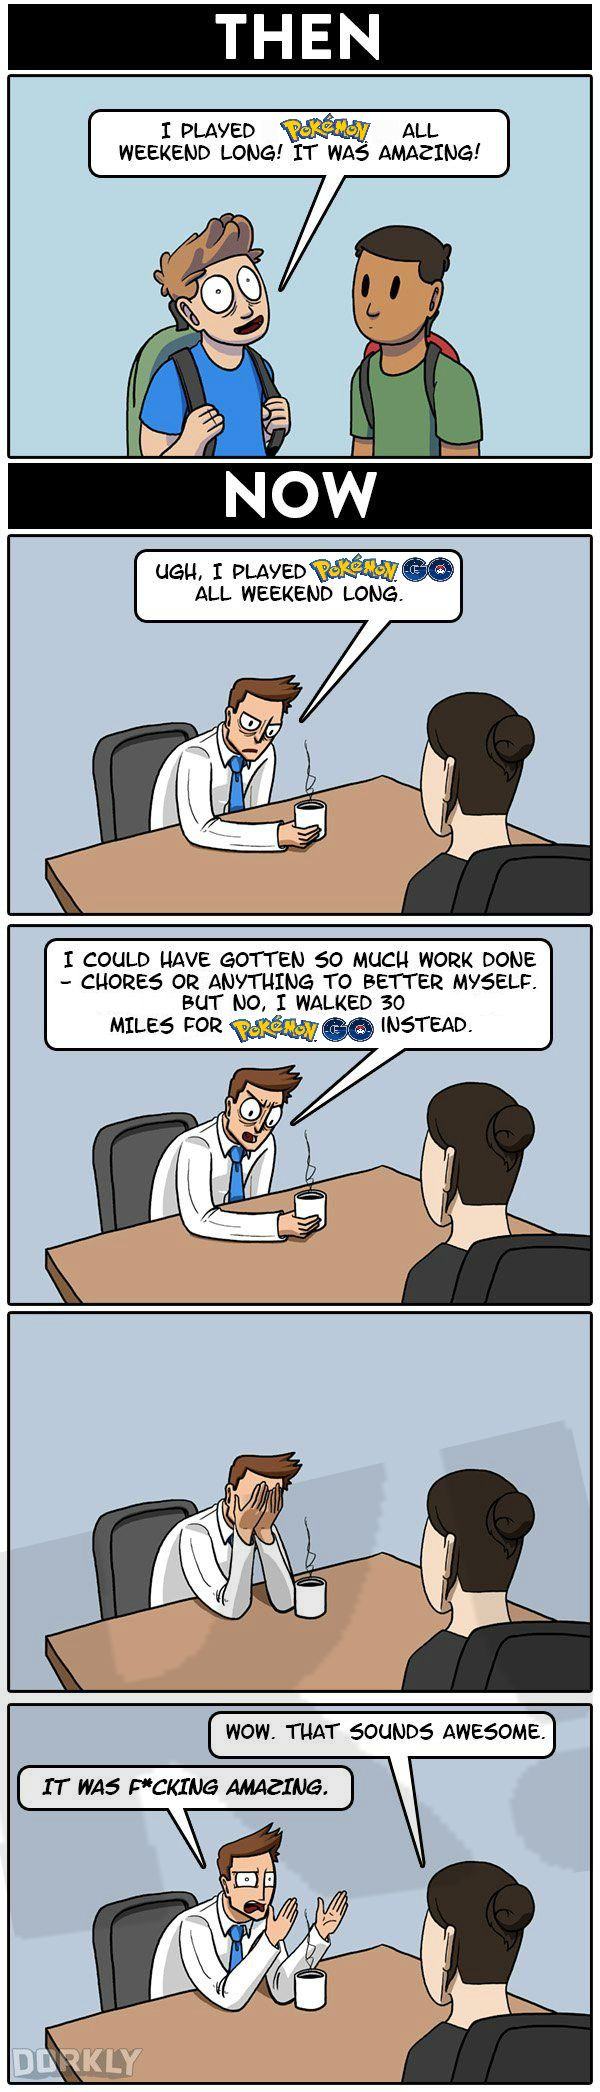 I updated an old Dorkly comic to reflect my weekend.